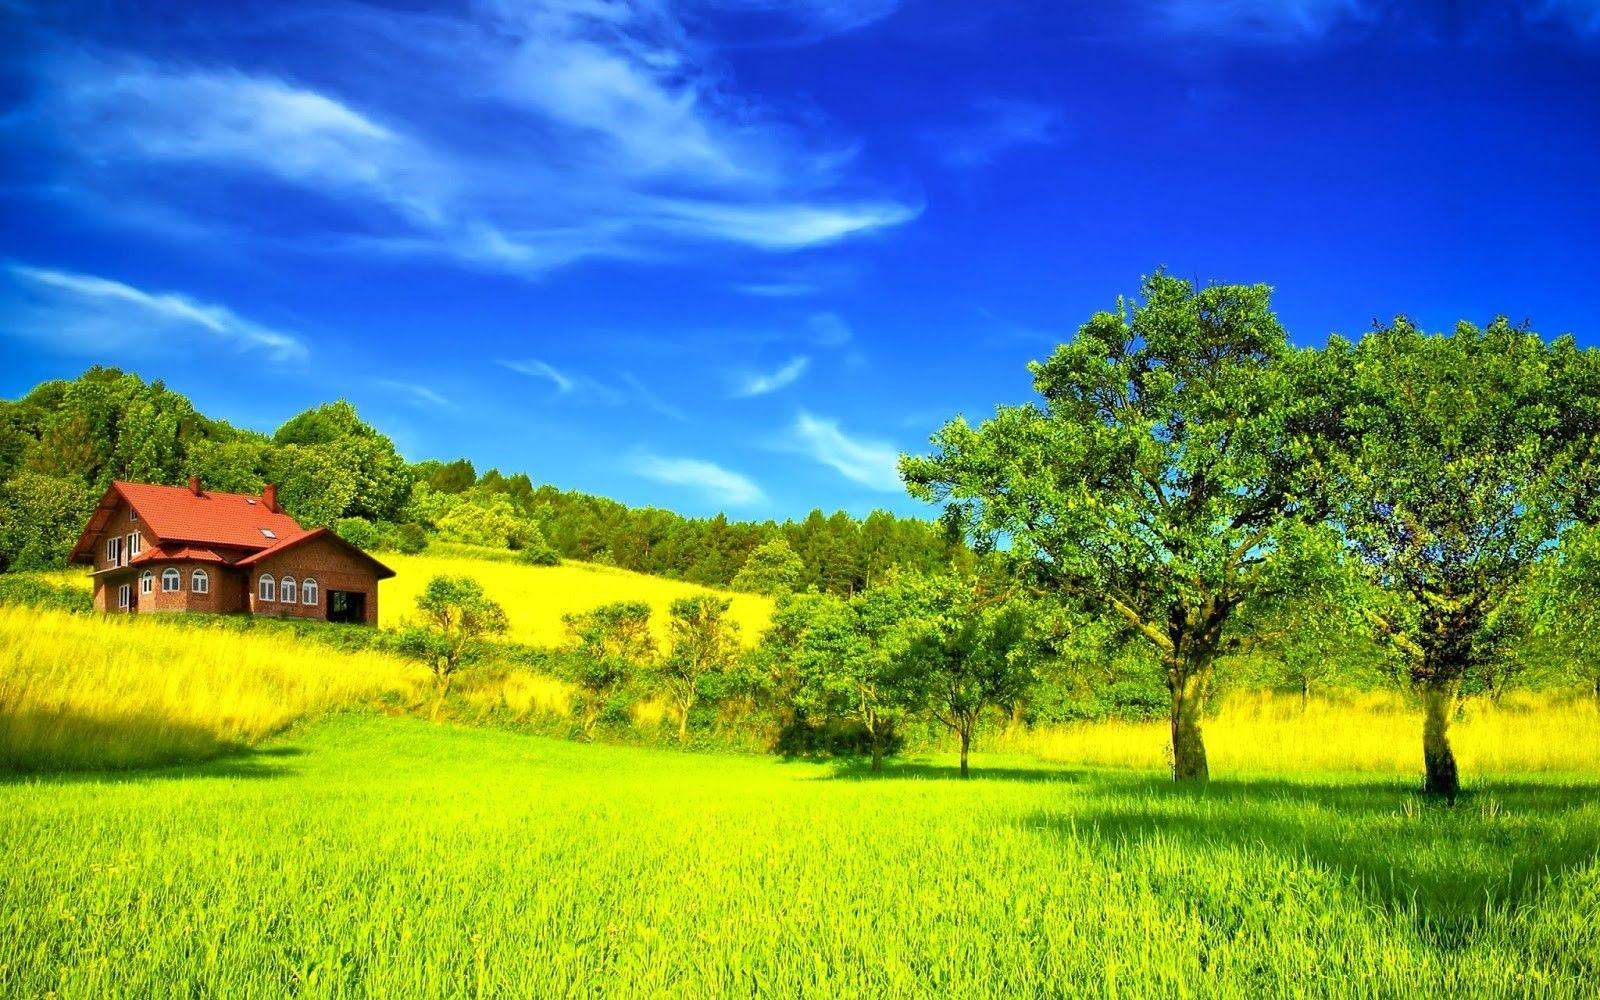 Desktop Beautiful Summer Season Hd With Nature Most Green Mountains